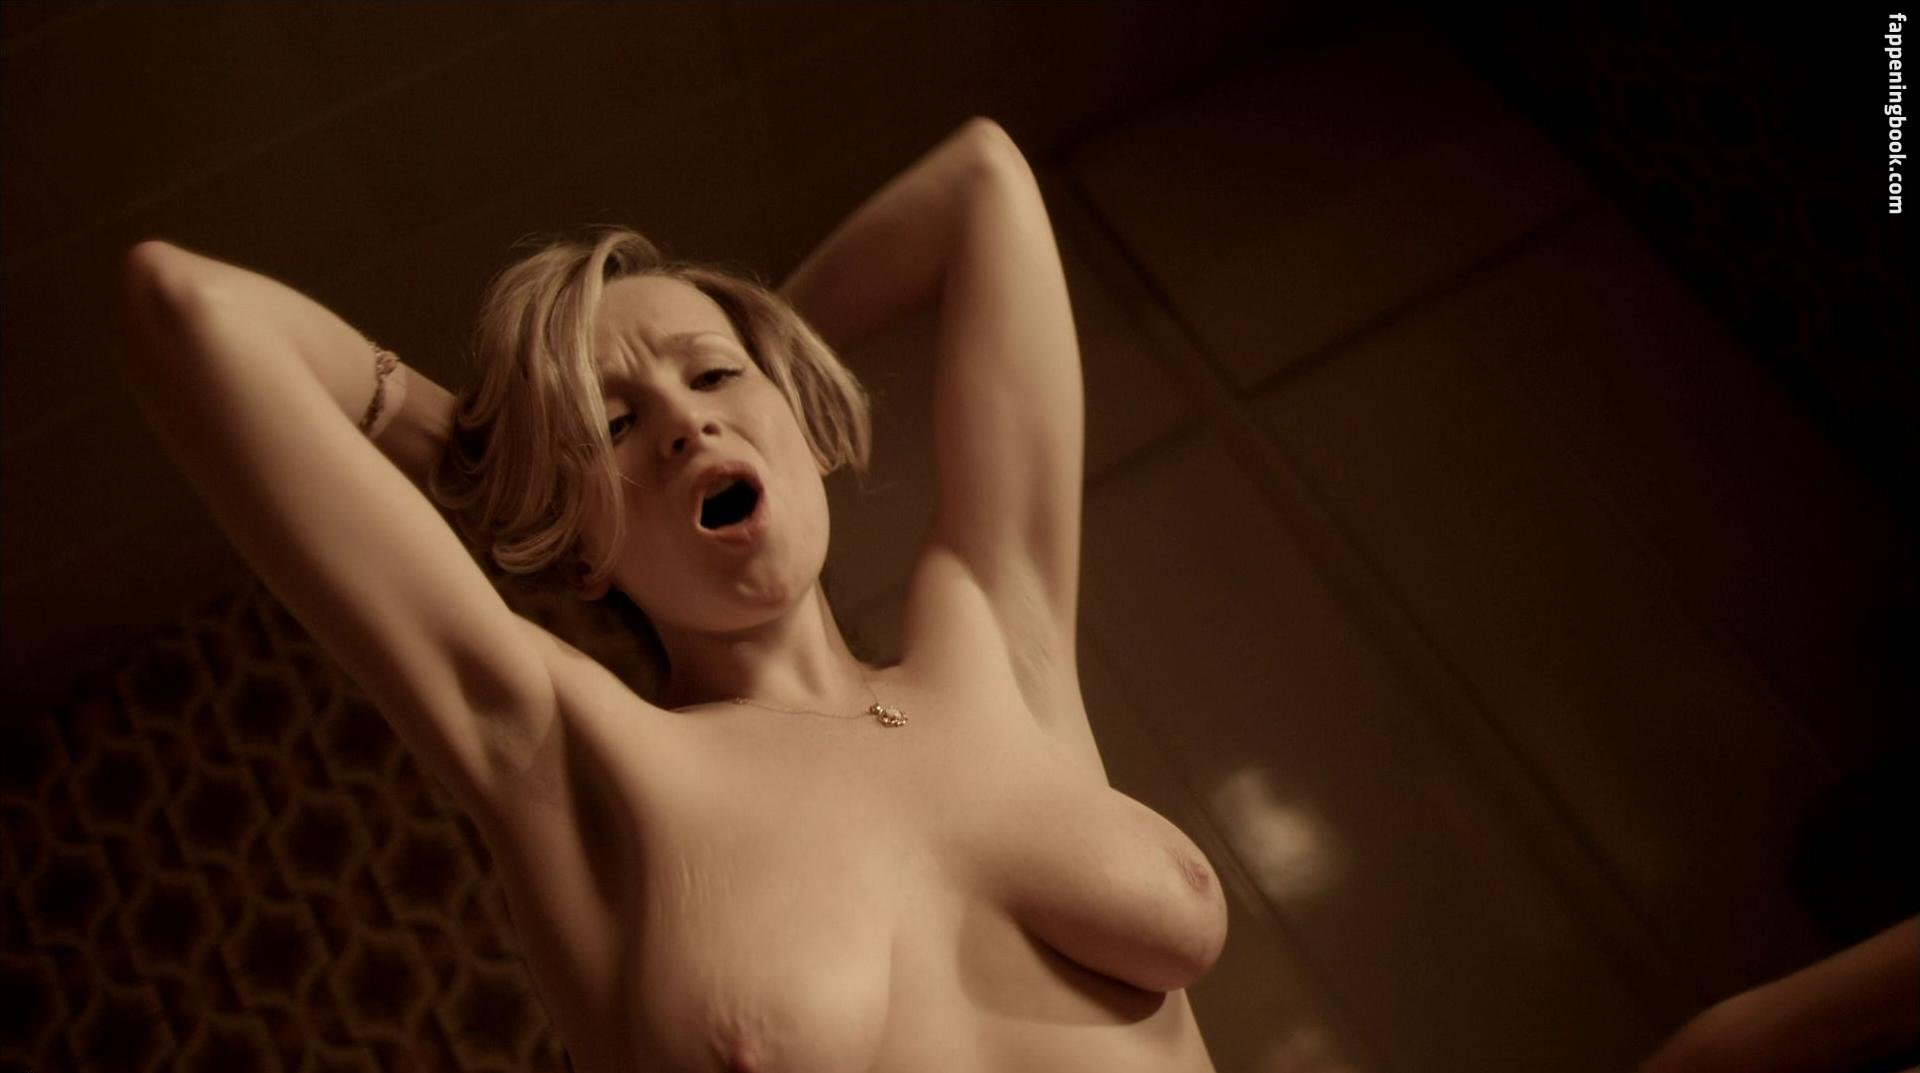 Amy Beth Hayes Nude amy beth hayes nude, sexy, the fappening, uncensored - photo